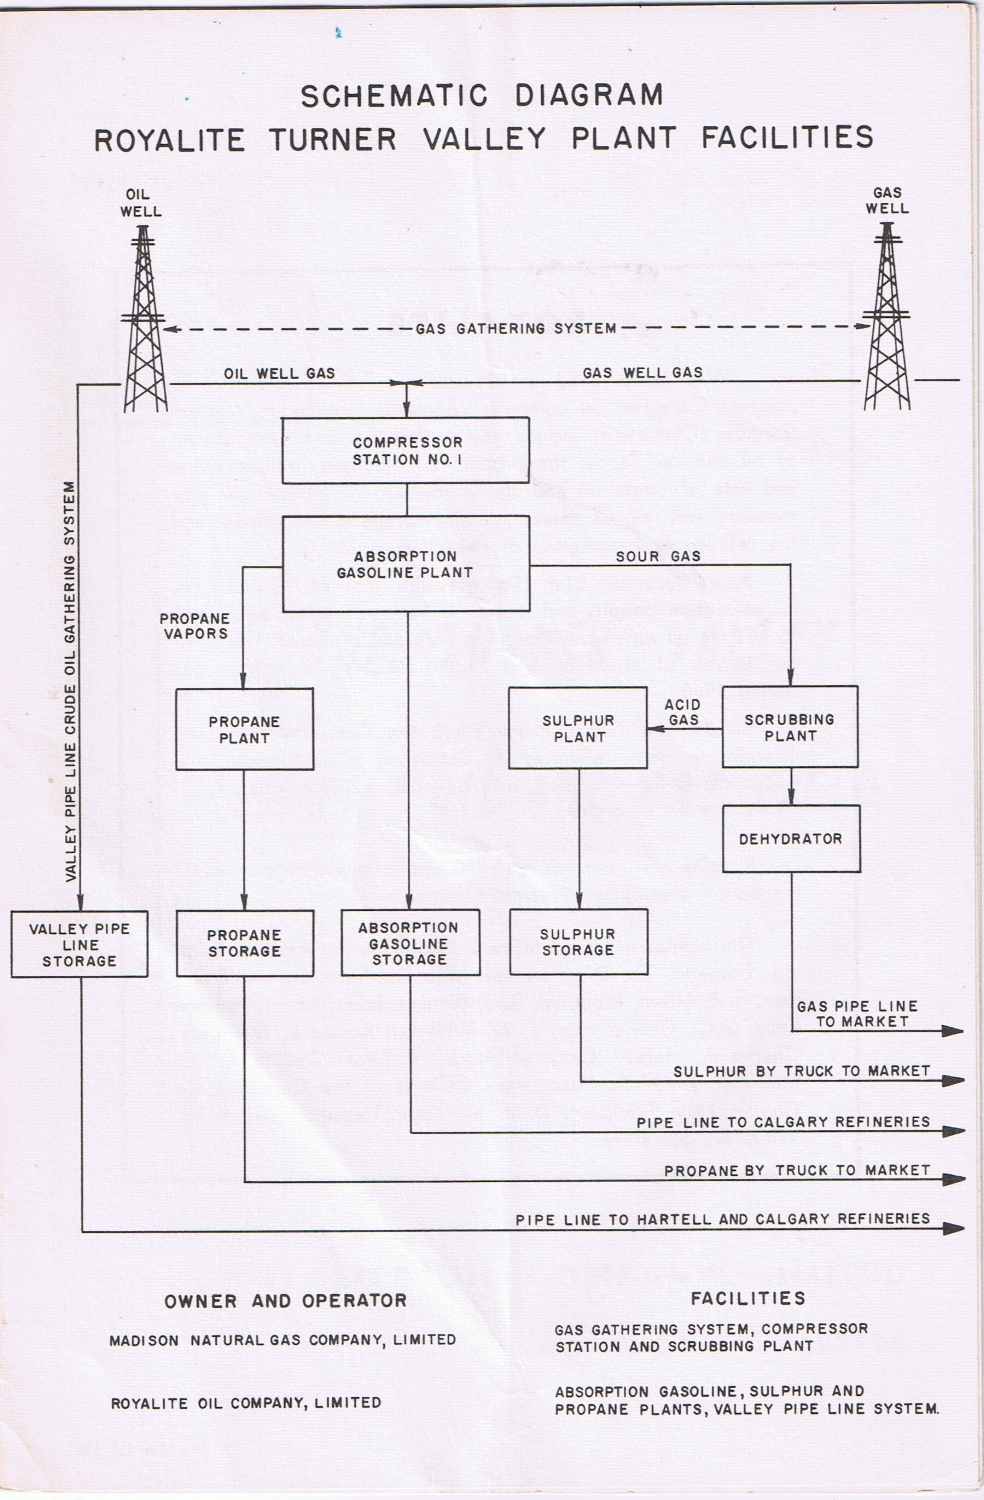 factory flow chart pneumatic valve wiki sewing process flow chart image collections chart example ideas royalite - Wiki Flowchart